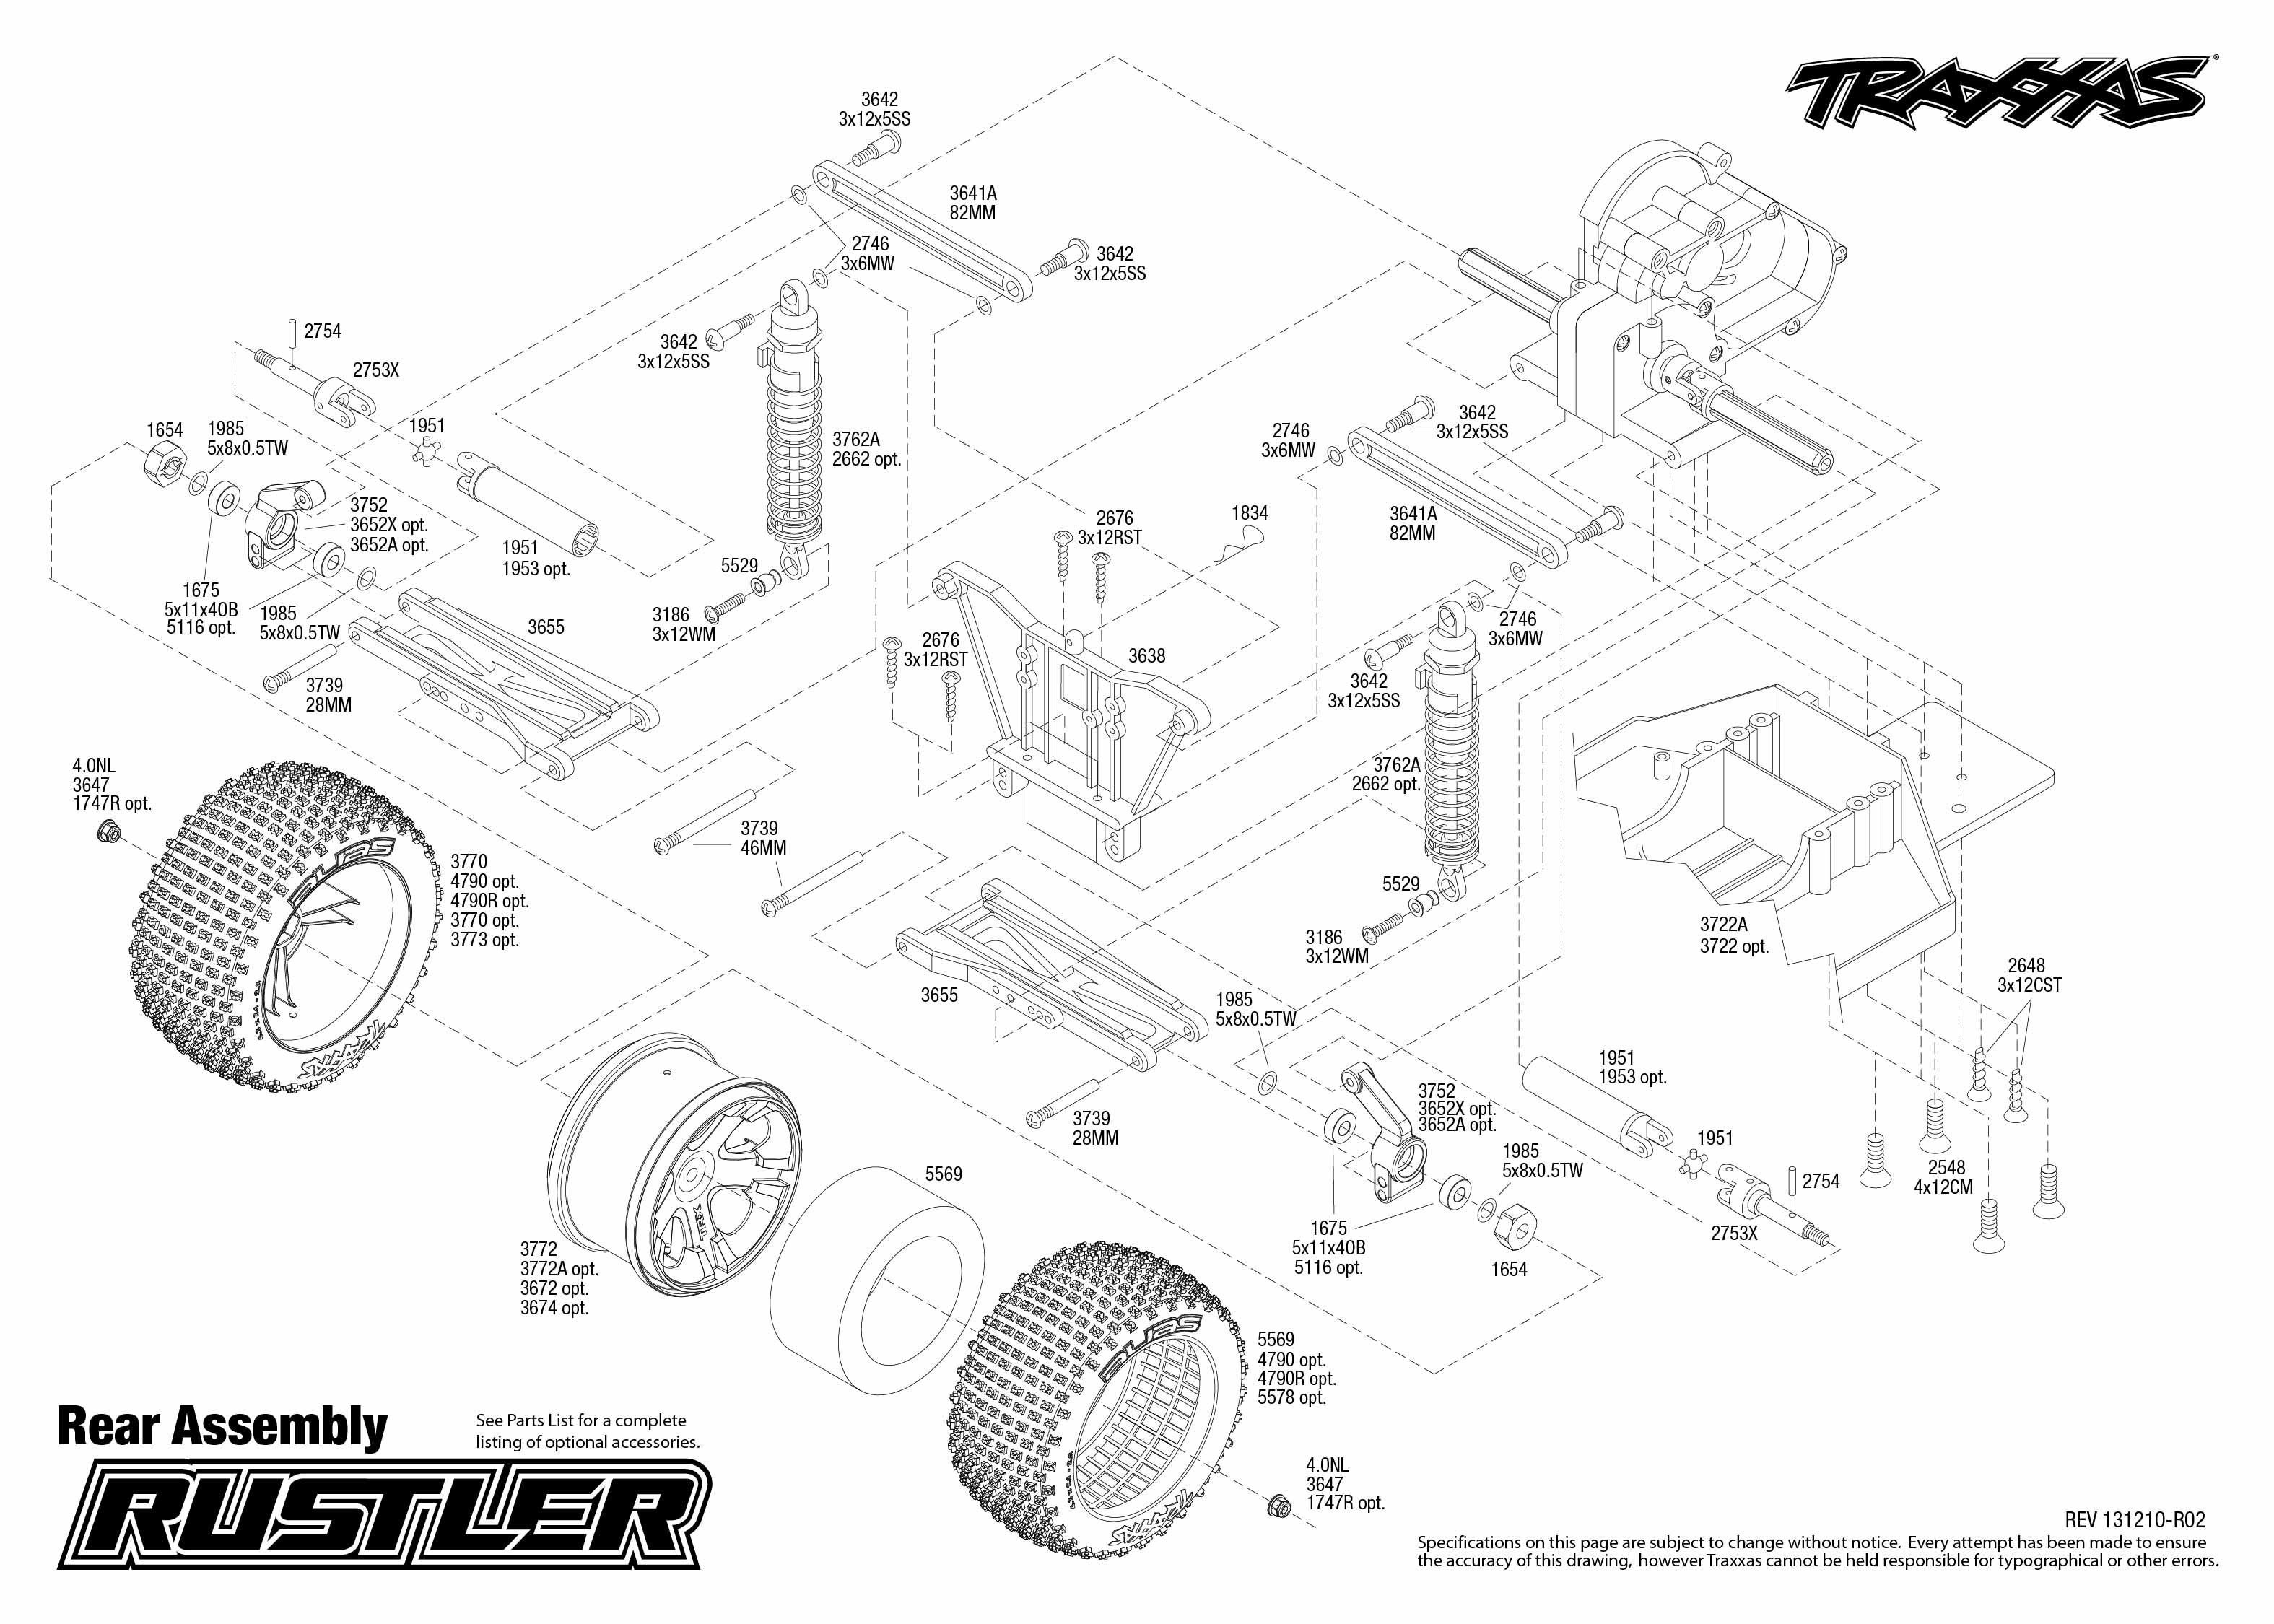 rustler 37054 rear assembly traxxas : traxxas rustler diagram - findchart.co